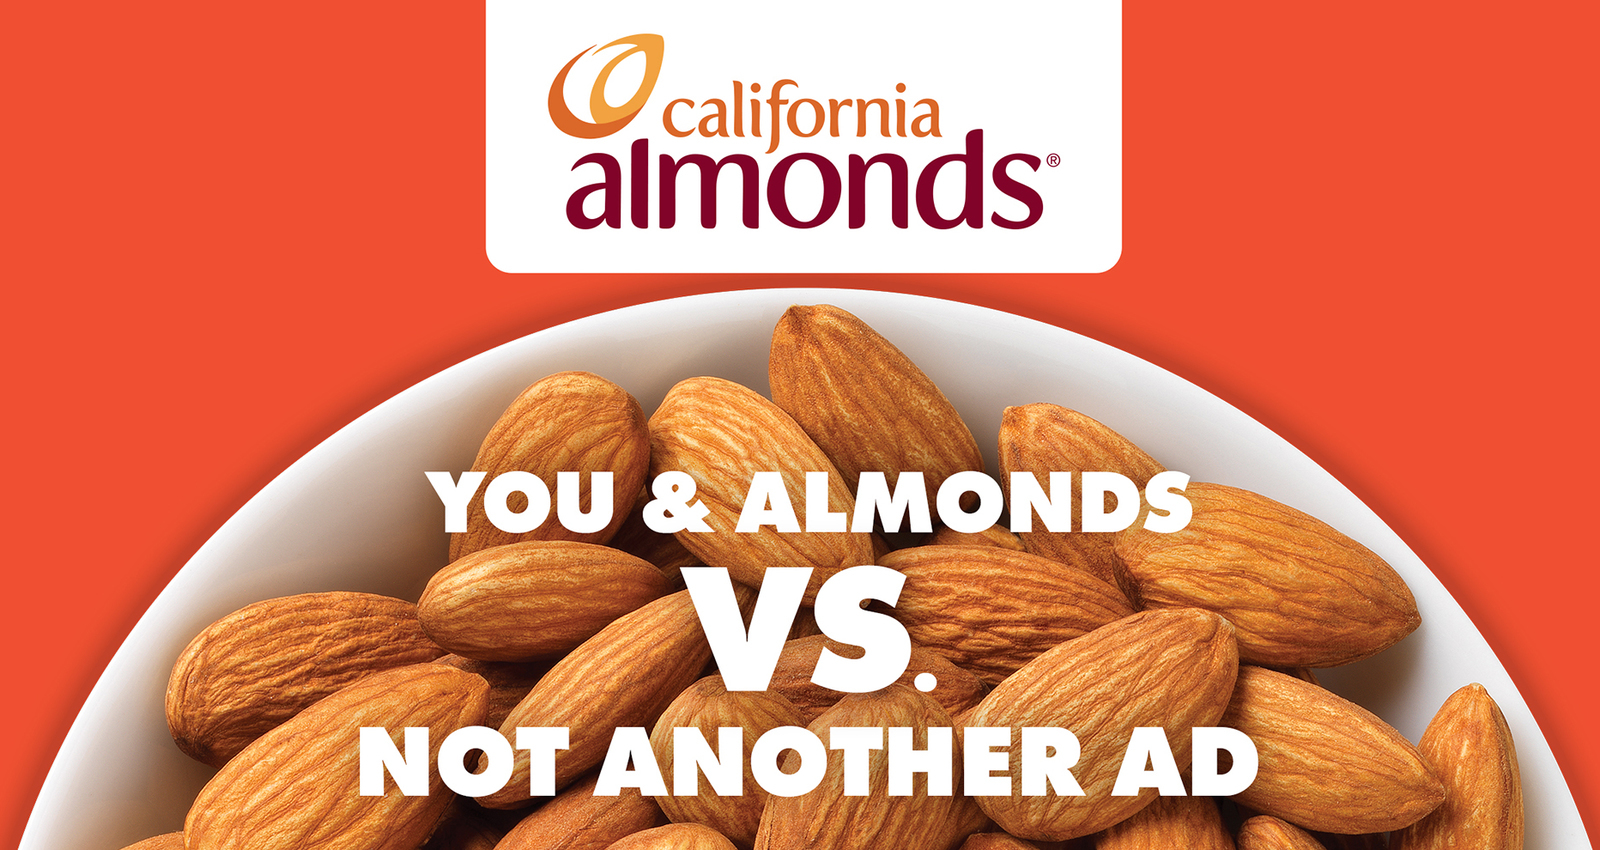 Almonds Own Your Every Day Radio